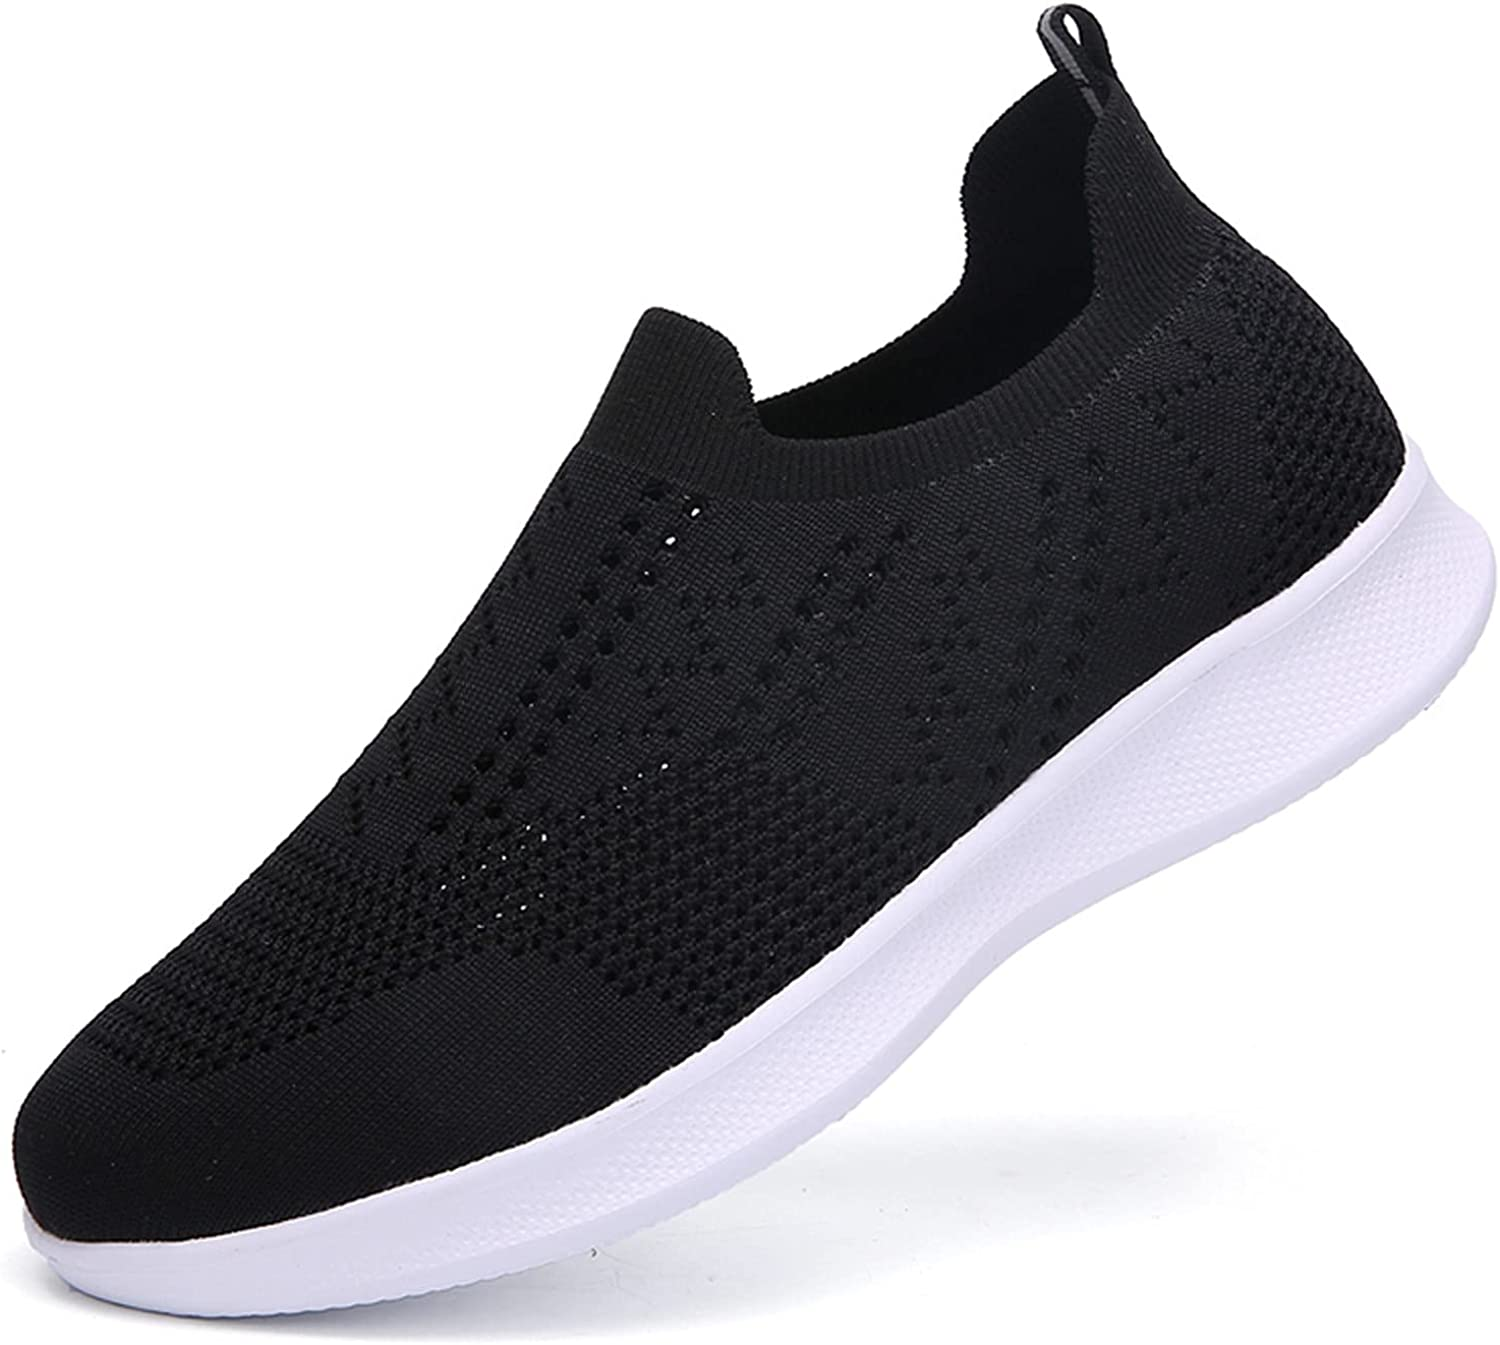 Dreamyam Couple Fashion Walking Sock Shoes Slip on Mesh Air Cushion Lightweight Comfortable Easy Sneakers Shoes Loafers